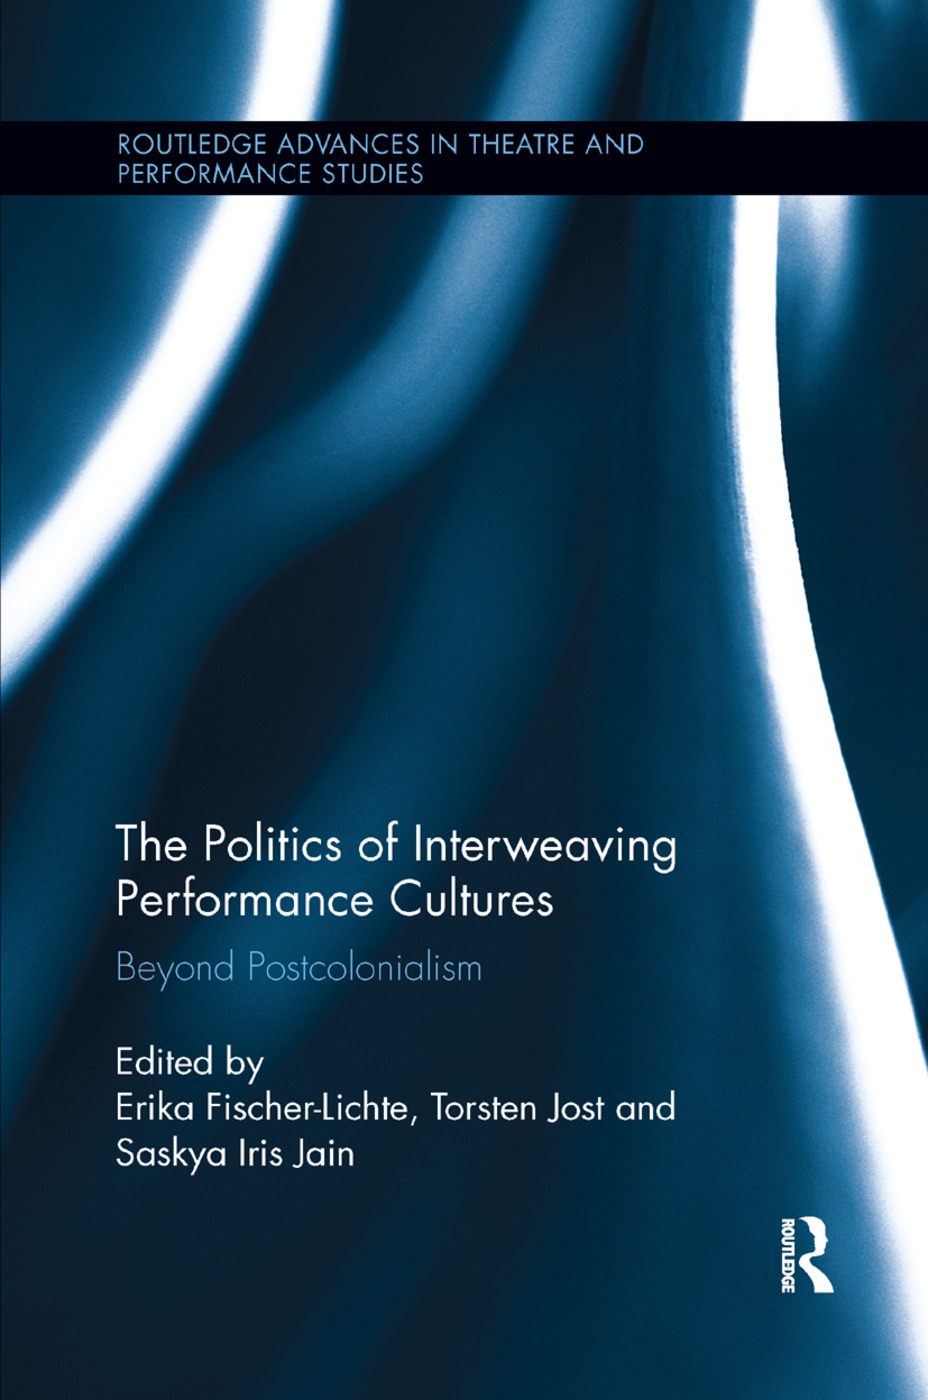 The Politics of Interweaving Performance Cultures: Beyond Postcolonialism book cover